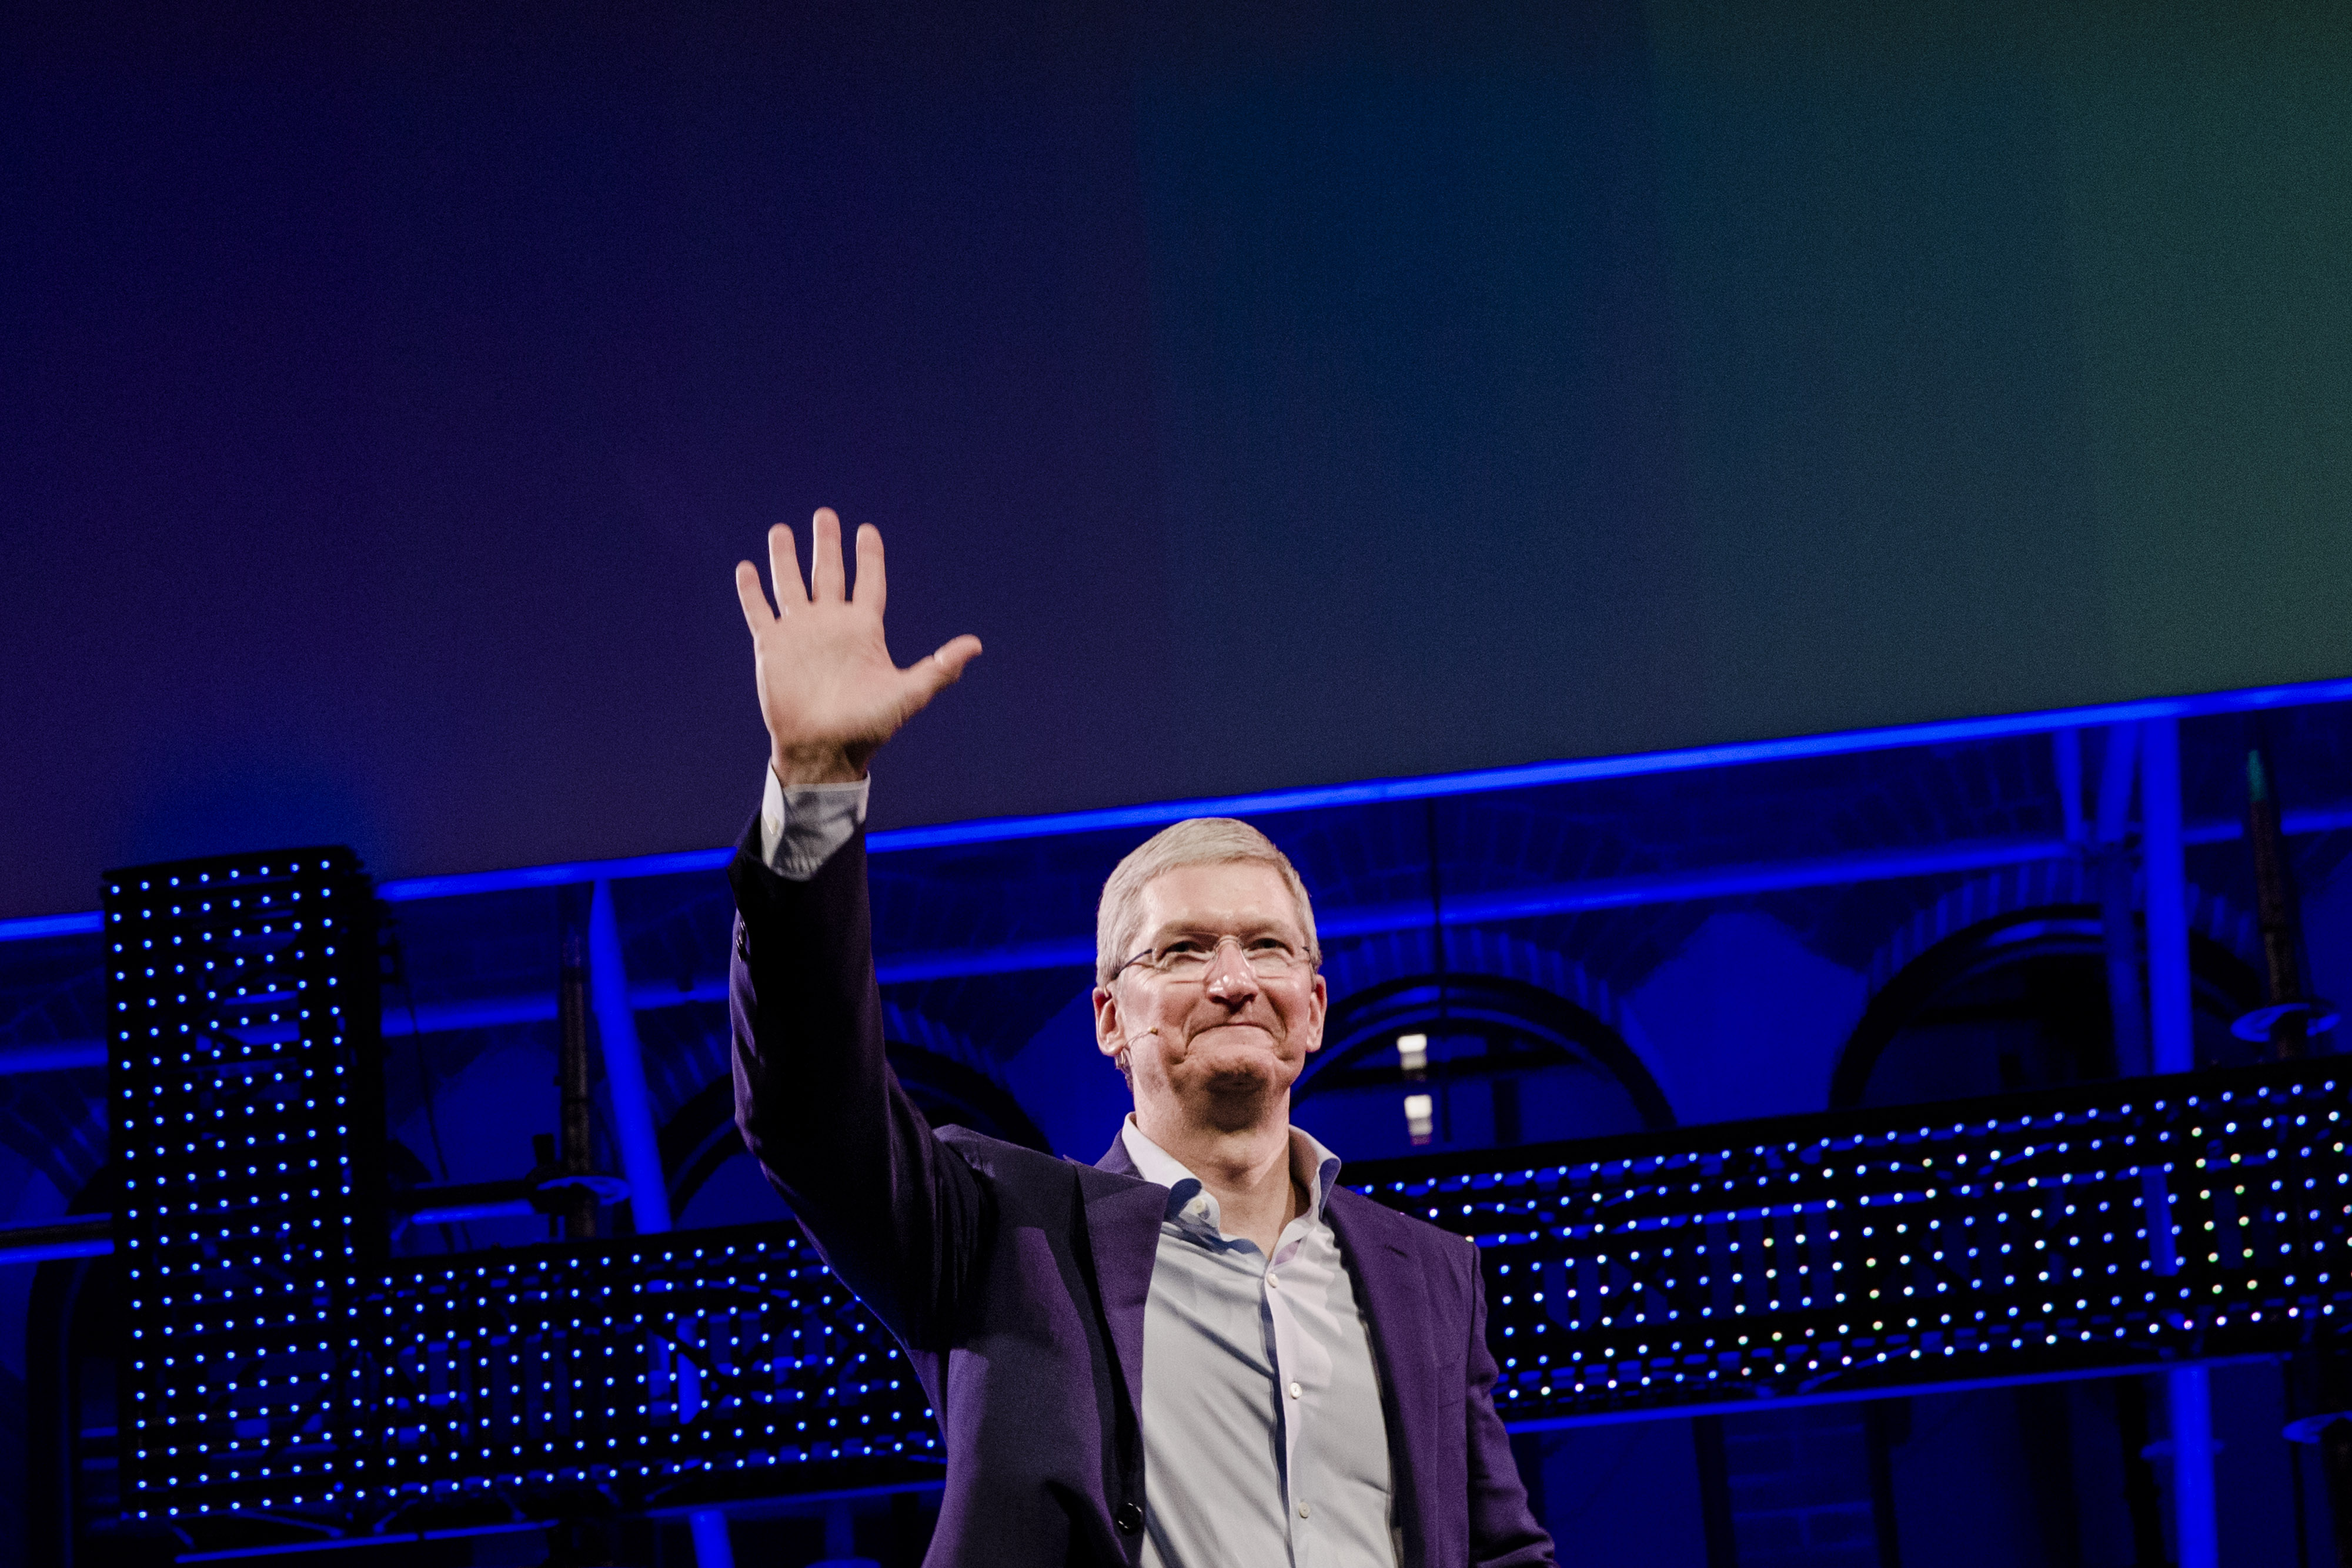 Tim Cook, chief executive officer of Apple Inc., waves to the audience during the opening of  Startup Fest , a five-day conference to showcase Dutch innovation, in Amsterdam, Netherlands, on Tuesday, May 24, 2016.